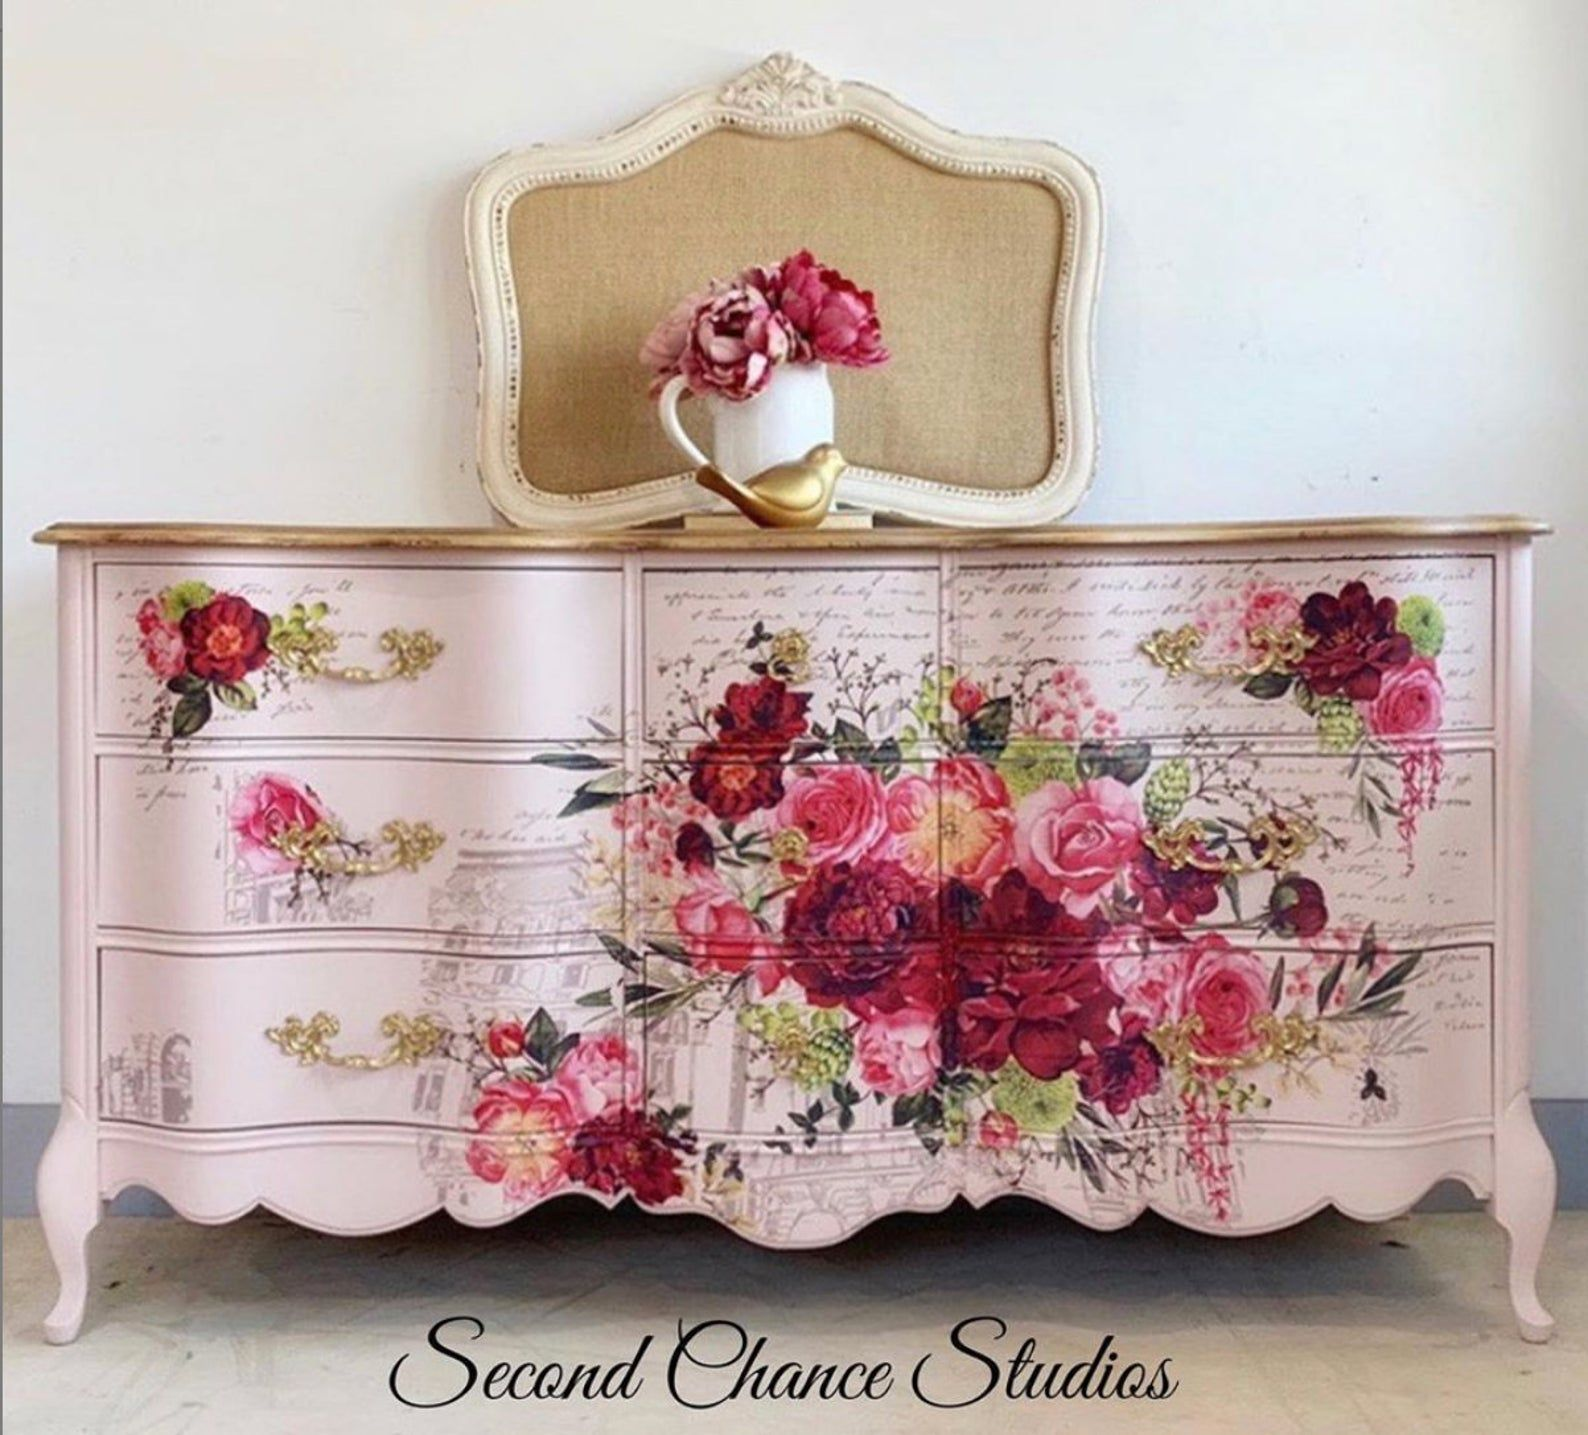 Rub On Transfers For Furniture Furniture Decals Redesign With Prima Transfers Royal Burgundy Rose Furniture Transfers 44 X 30 Painted Furniture Shabby Chic Furniture Chic Furniture